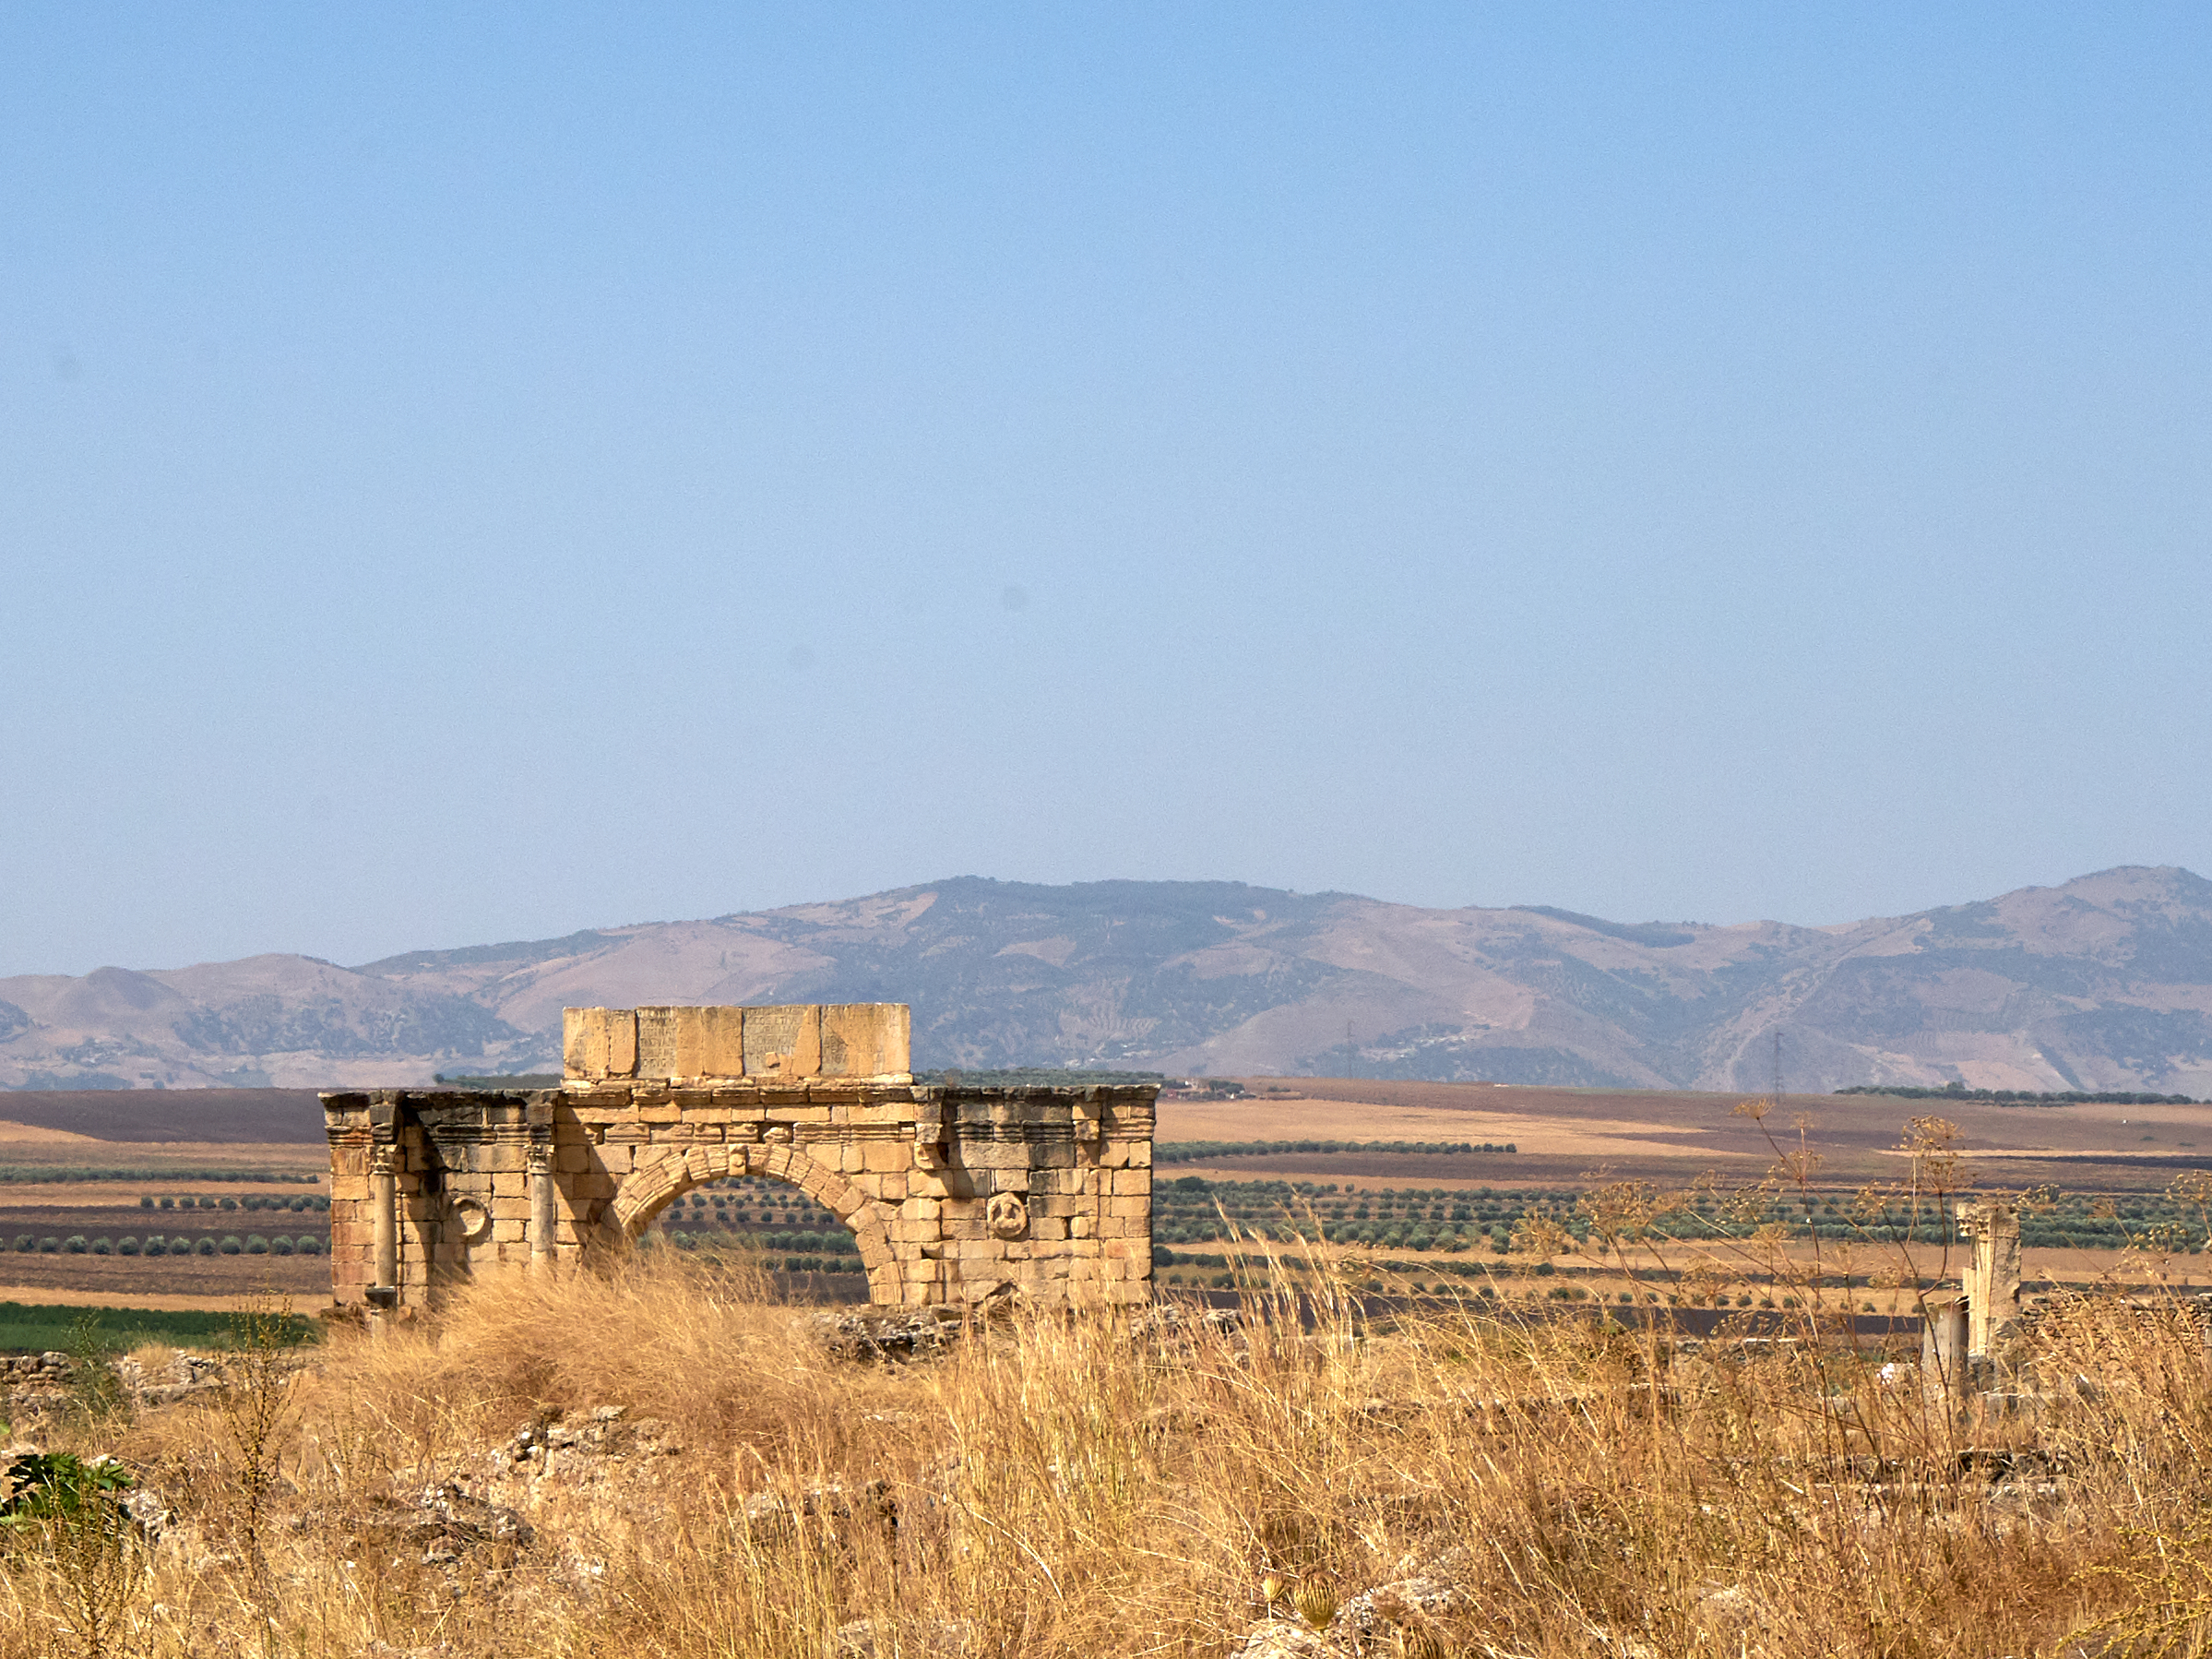 With its beautifully preserved arches, palaces, and basilicas, ancient Volubilis makes for a fascinating field trip.